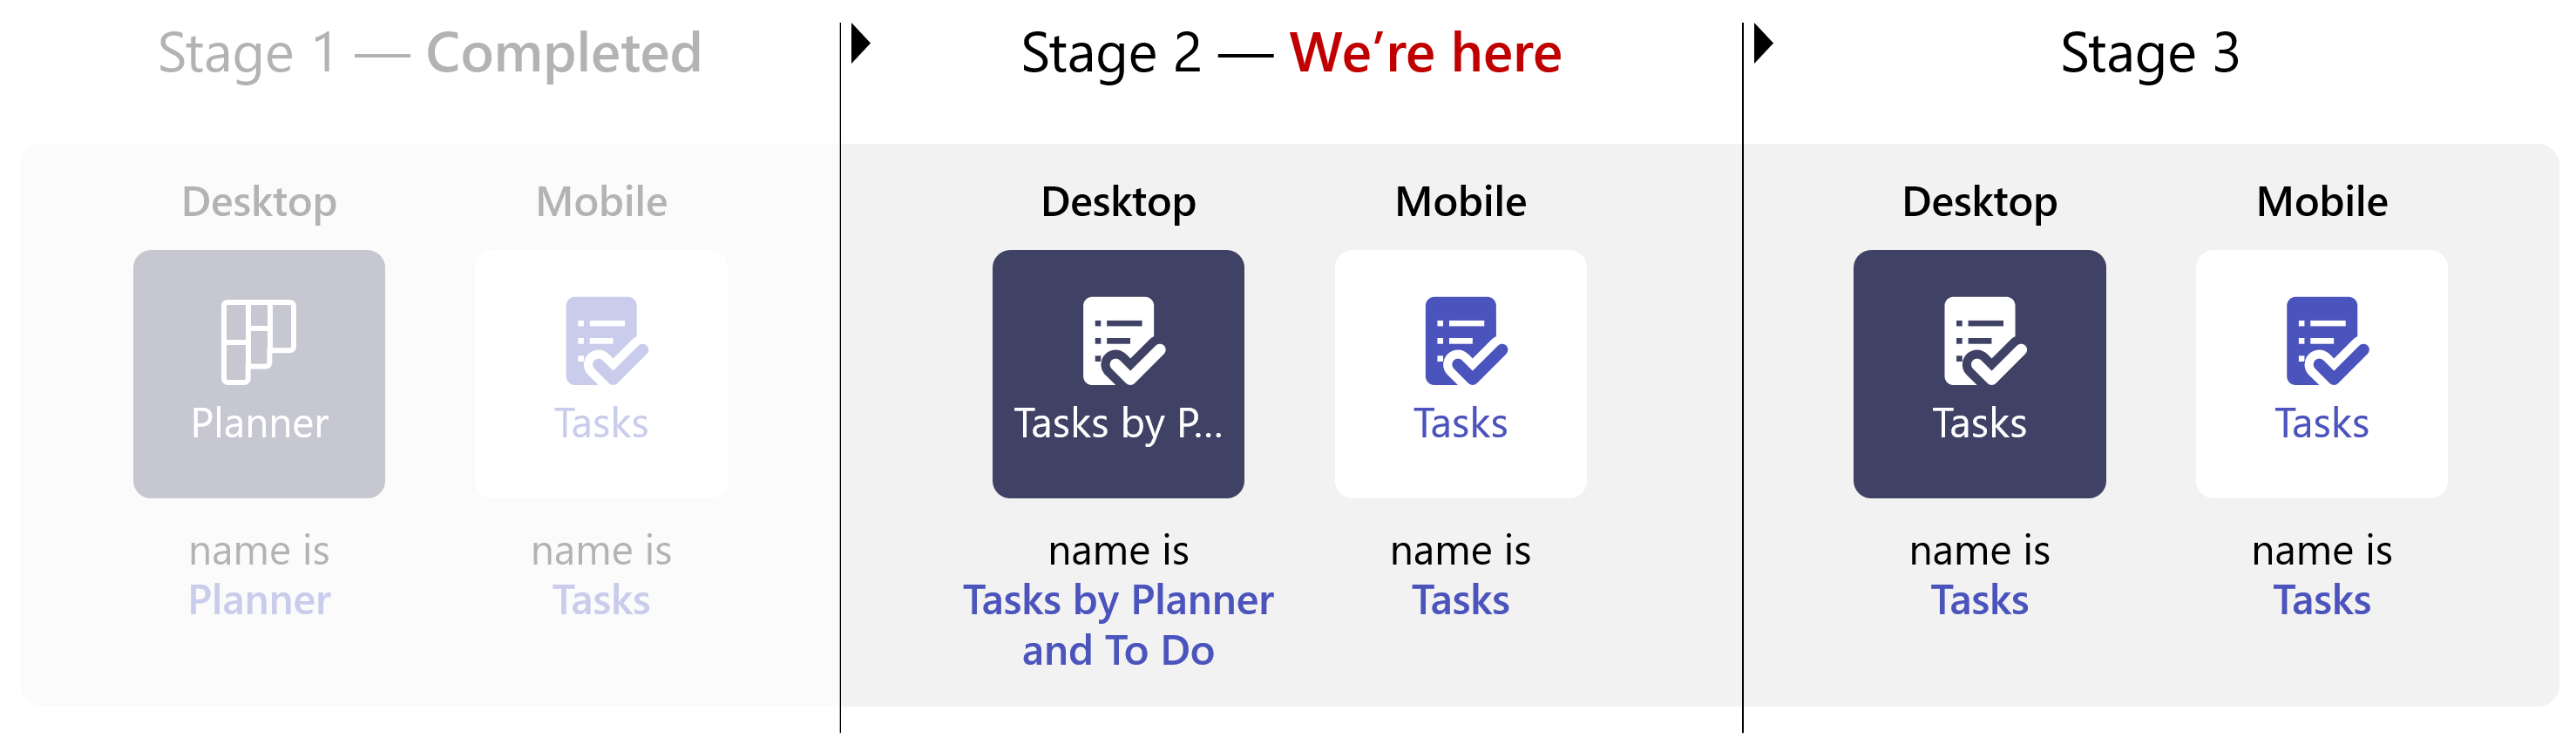 "Image shows stages of the Planner app in Teams changing to ""Tasks by Planner and To Do"" in stage 2 and finally ""Tasks"" in stage 3"